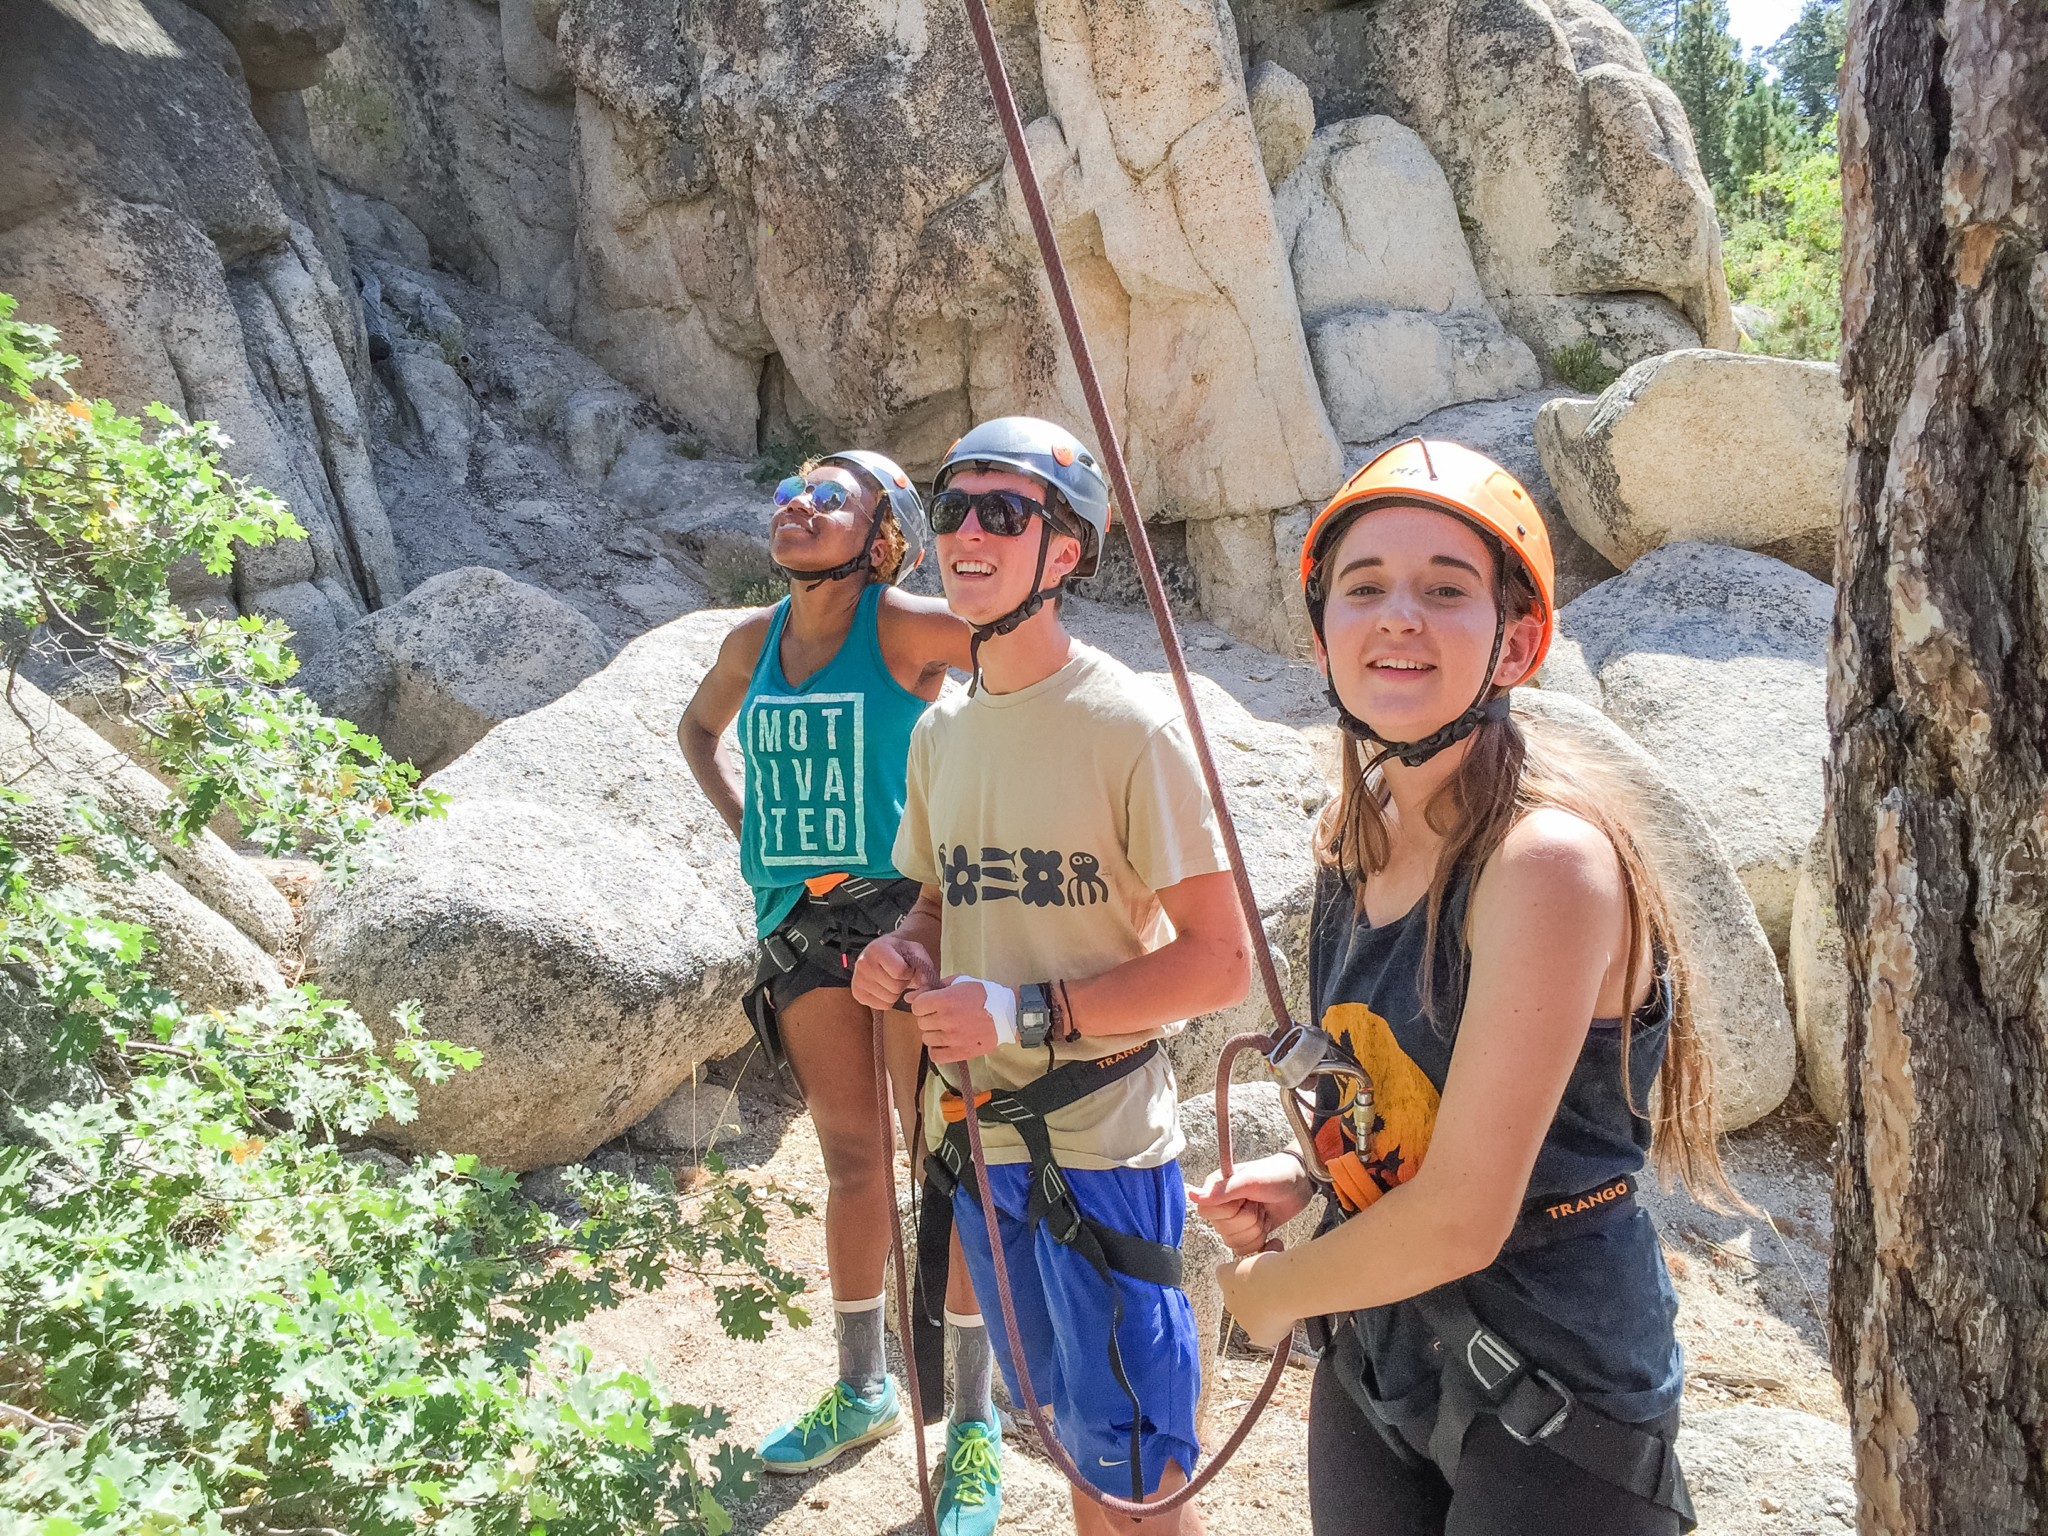 beginner, intermediate, advanced, sport, traditional, lead climbing, class, rock climbing, climbing, class, outdoor, joshua tree, los angeles, california, riverside, apple valley, climbing class, climbing classes, climbing instruction, climbing lessons, lessons, instruction, guided climbing